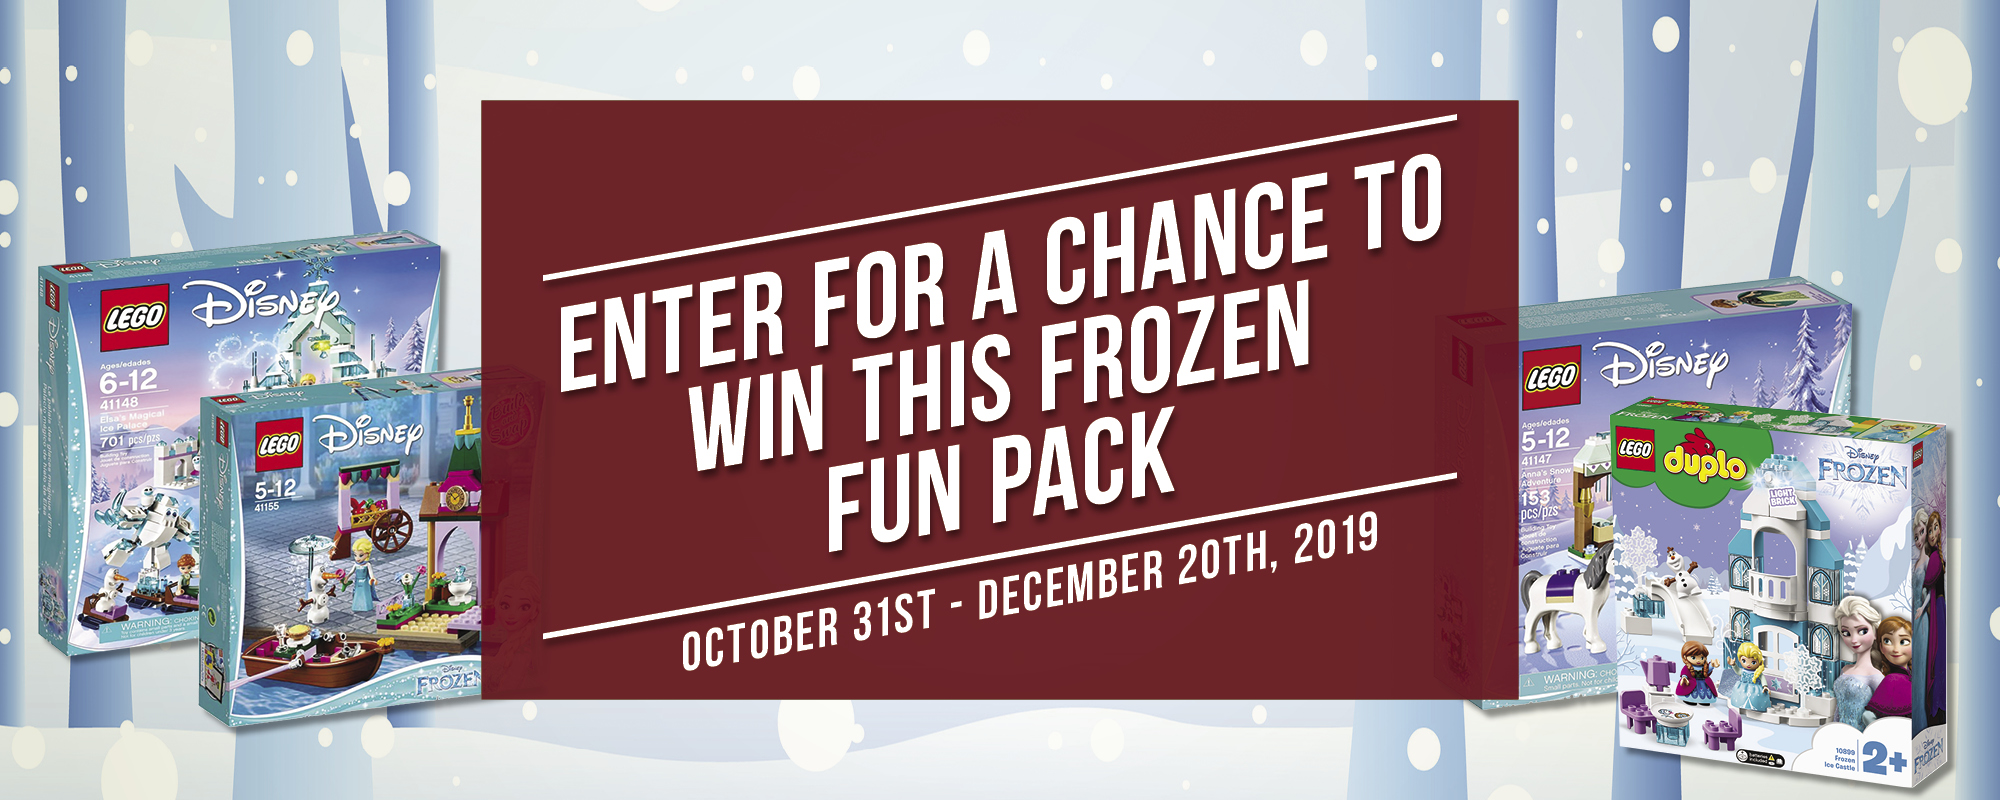 frozen fun pack contest